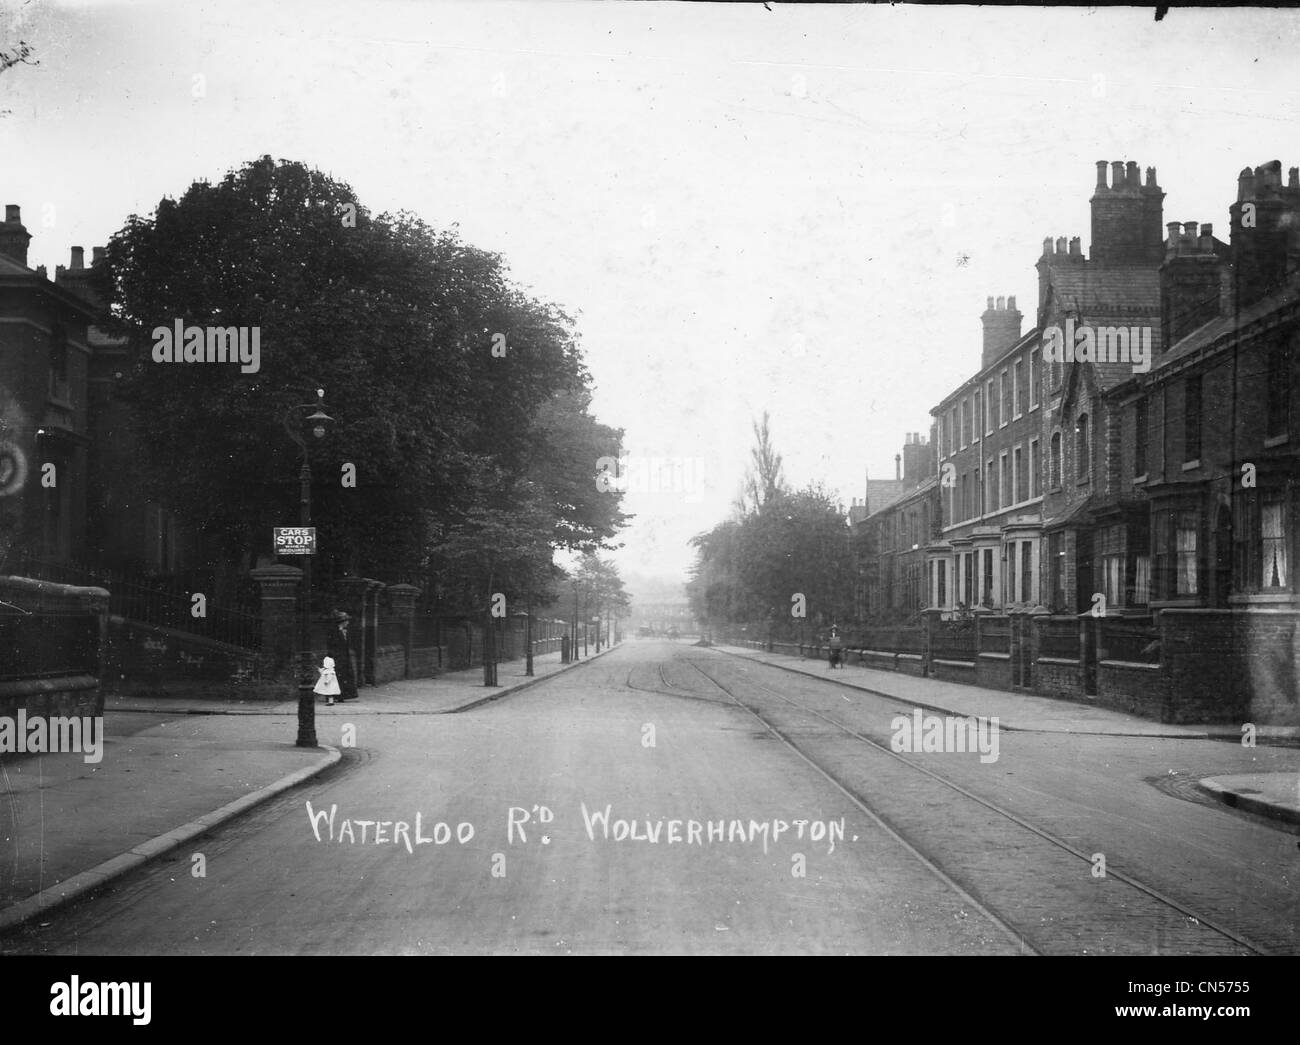 Waterloo Road, Wolverhampton, early 20th century. - Stock Image